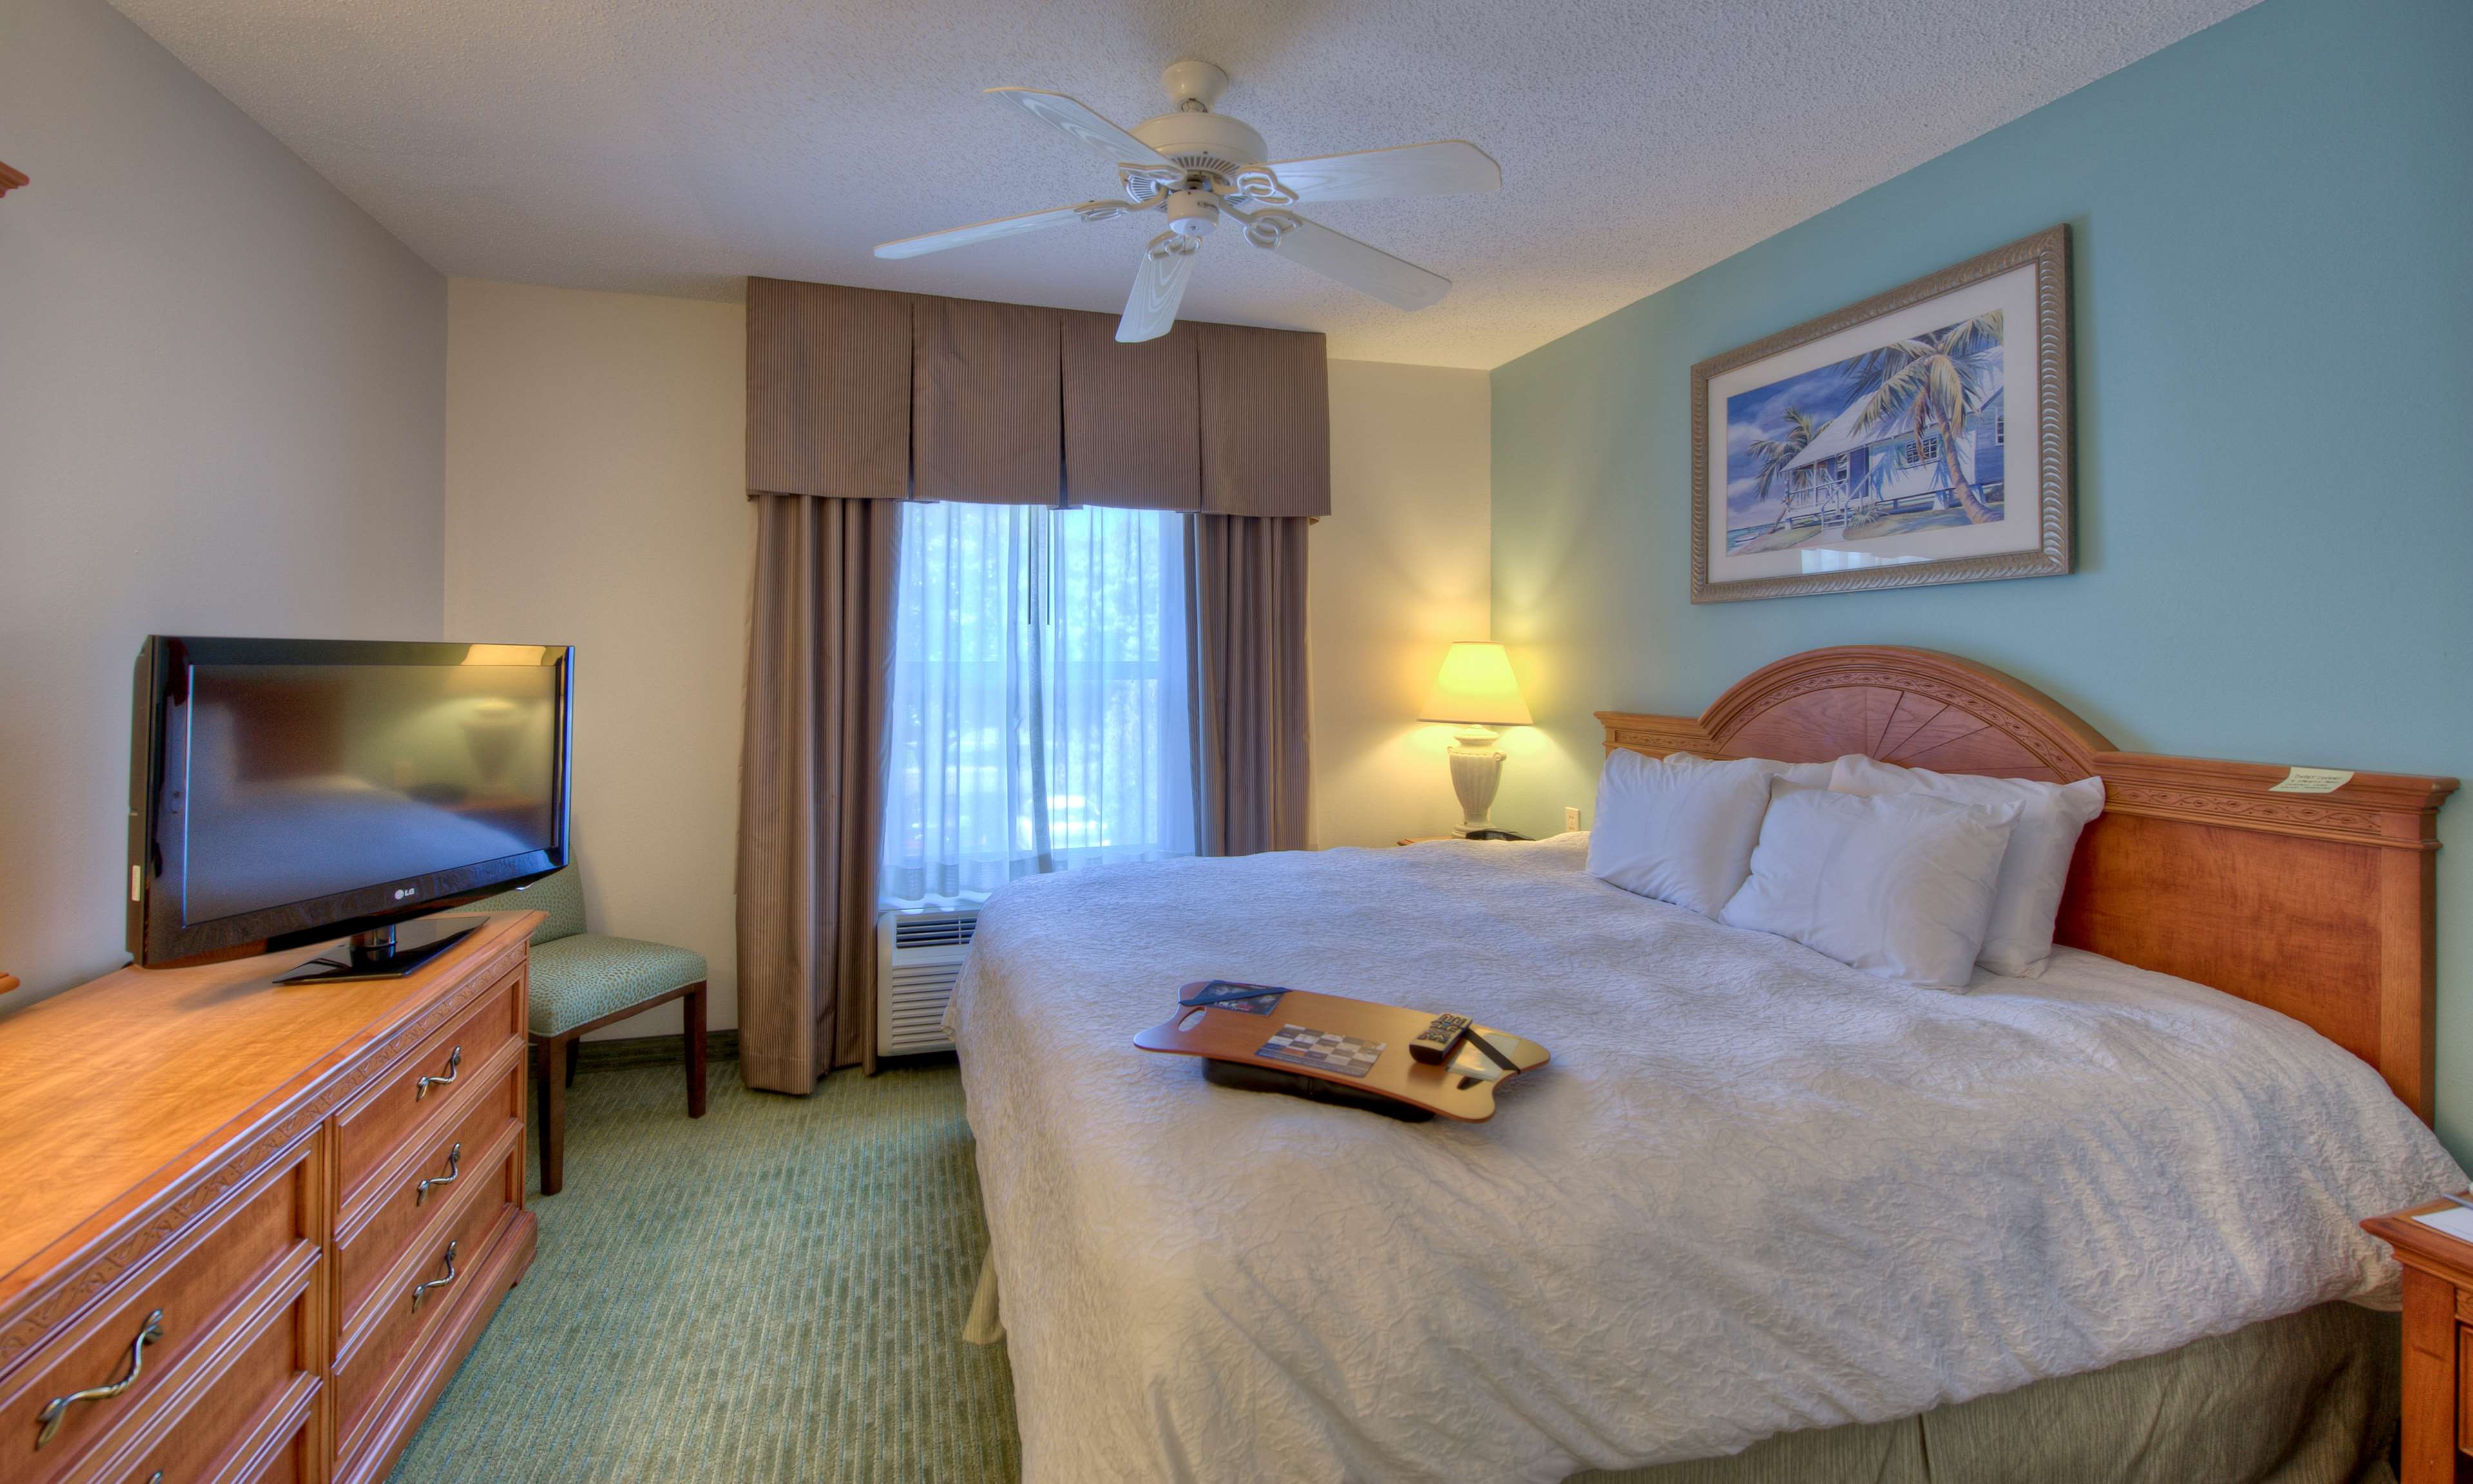 Hampton Inn & Suites Wilmington/Wrightsville Beach image 34